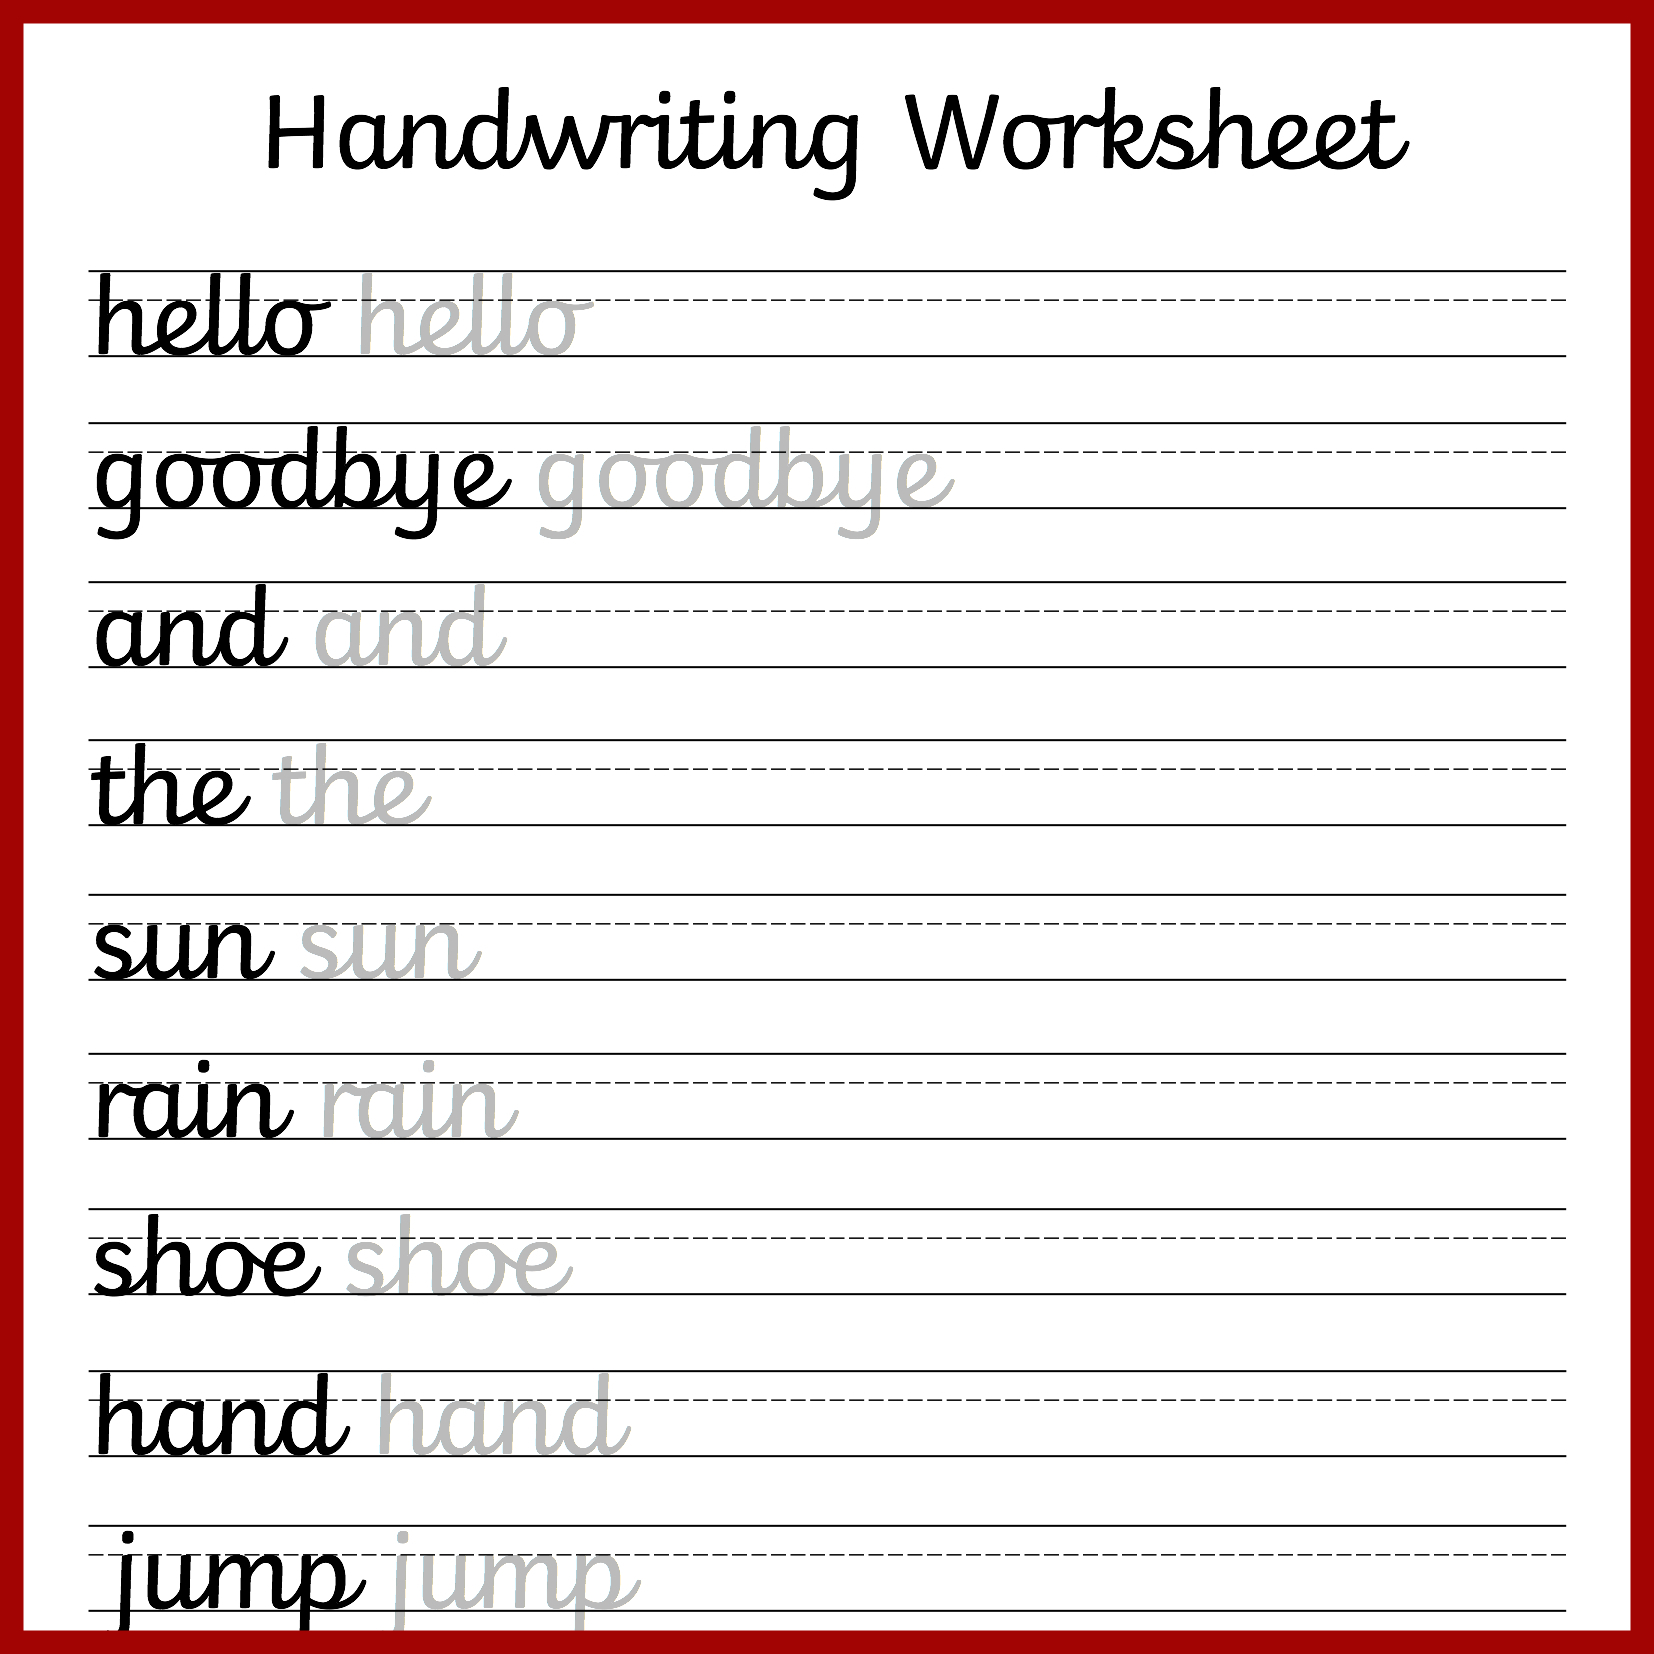 Cursive Handwriting Worksheets – Free Printable! ⋆ Mama Geek - Free | Printable Handwriting Worksheets